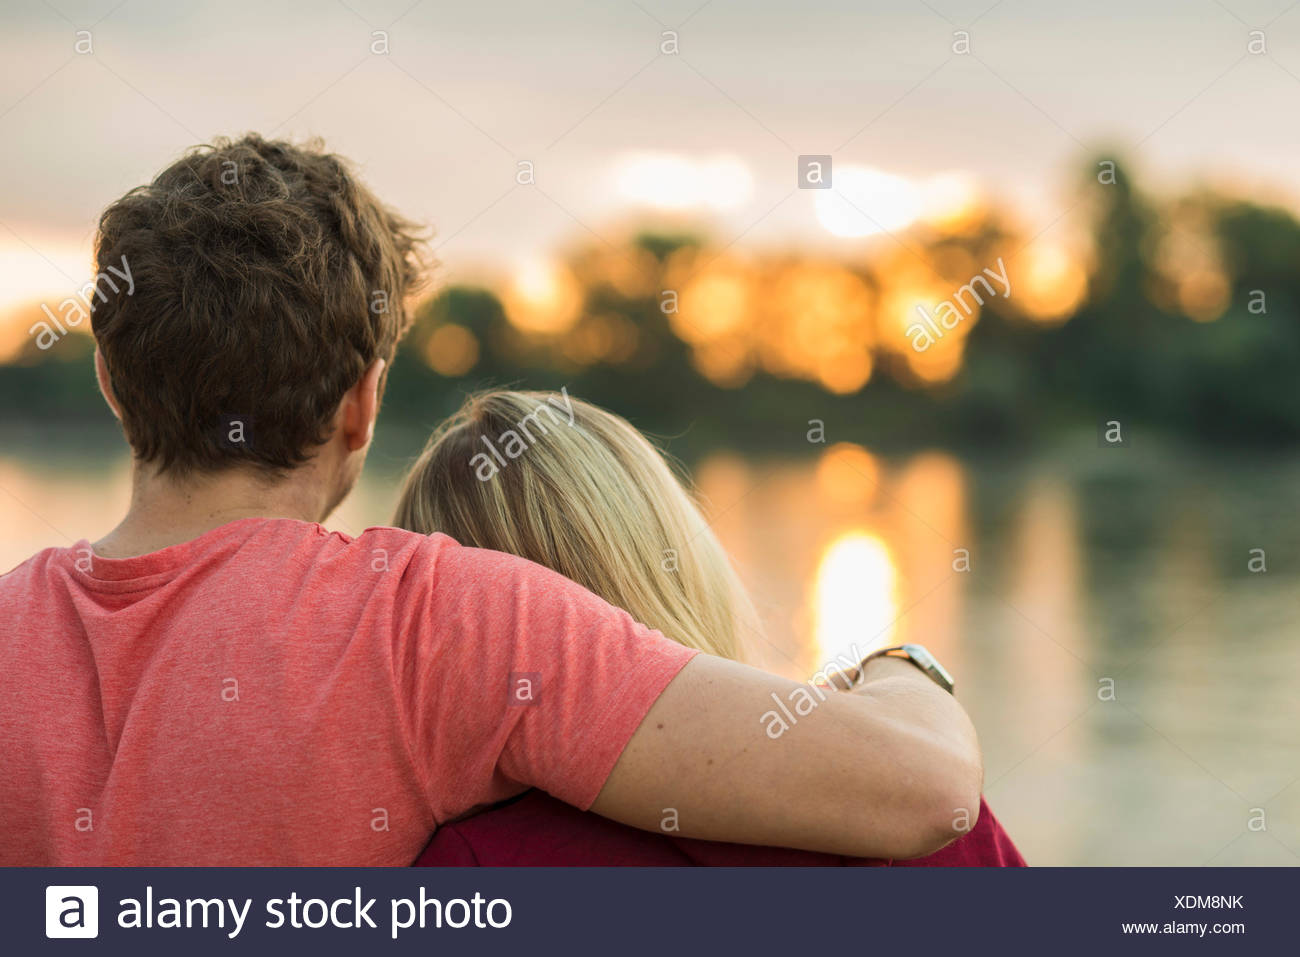 Young couple, man with arm around woman, rear view Stock Photo